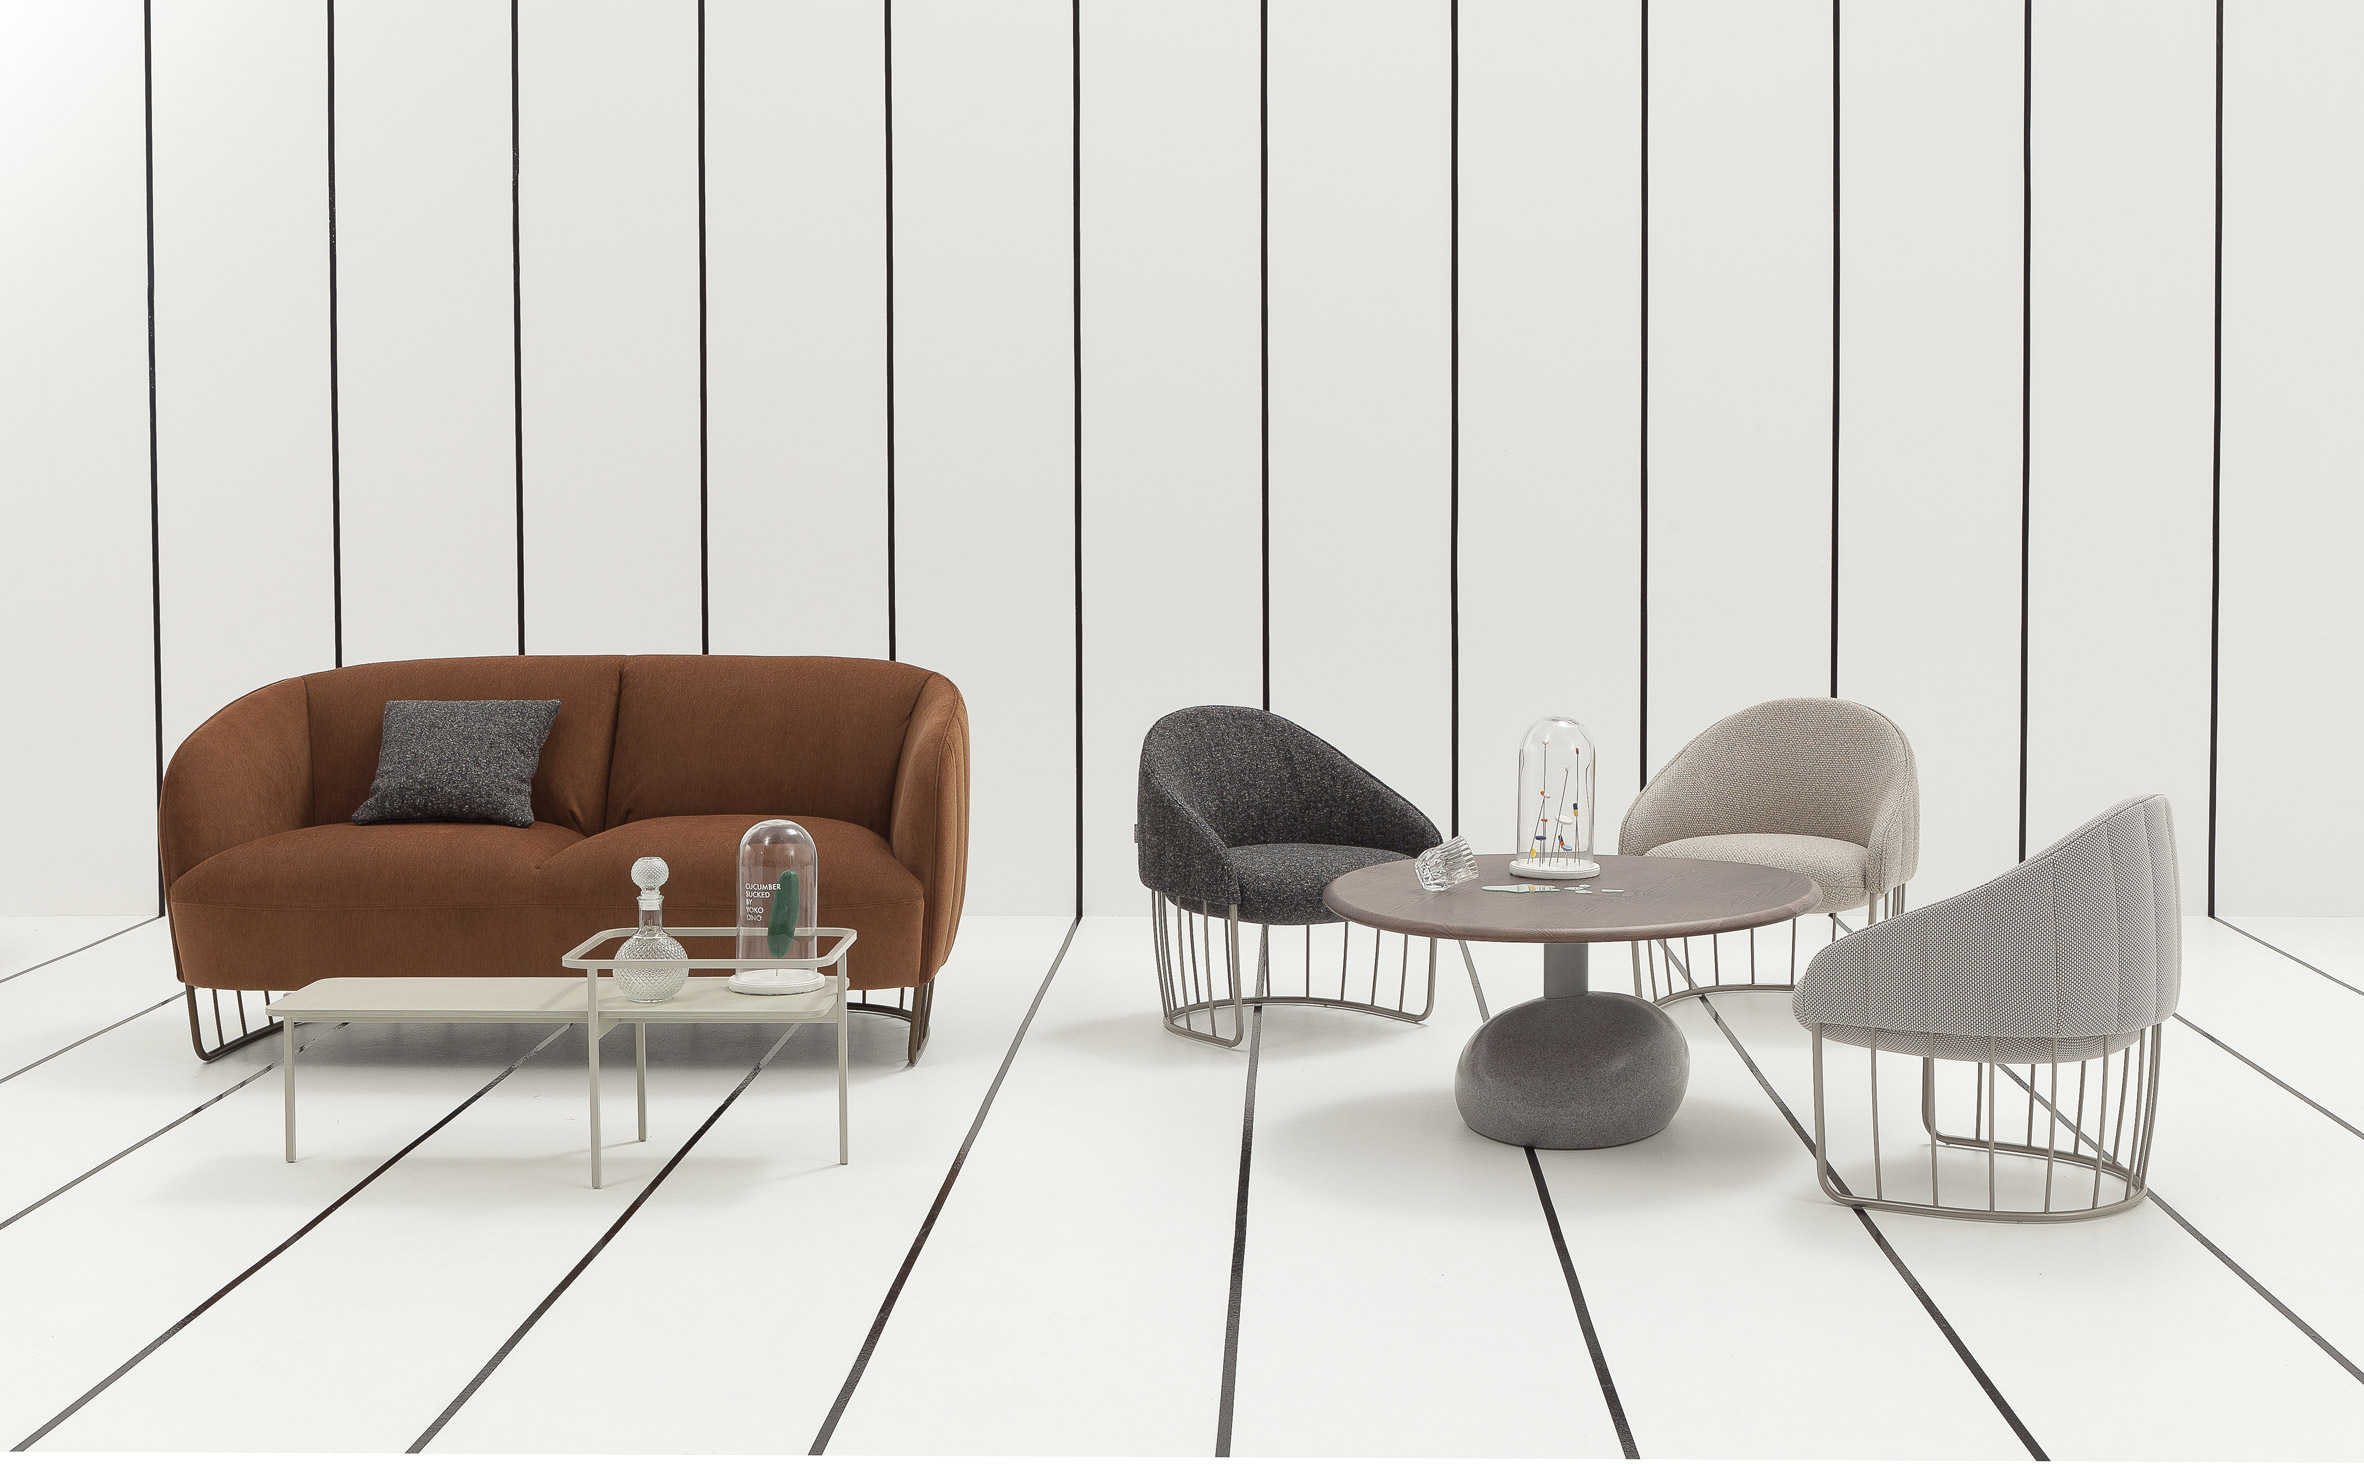 tonella-chair-collection-sancal-futura_dezeen_2364_col_2